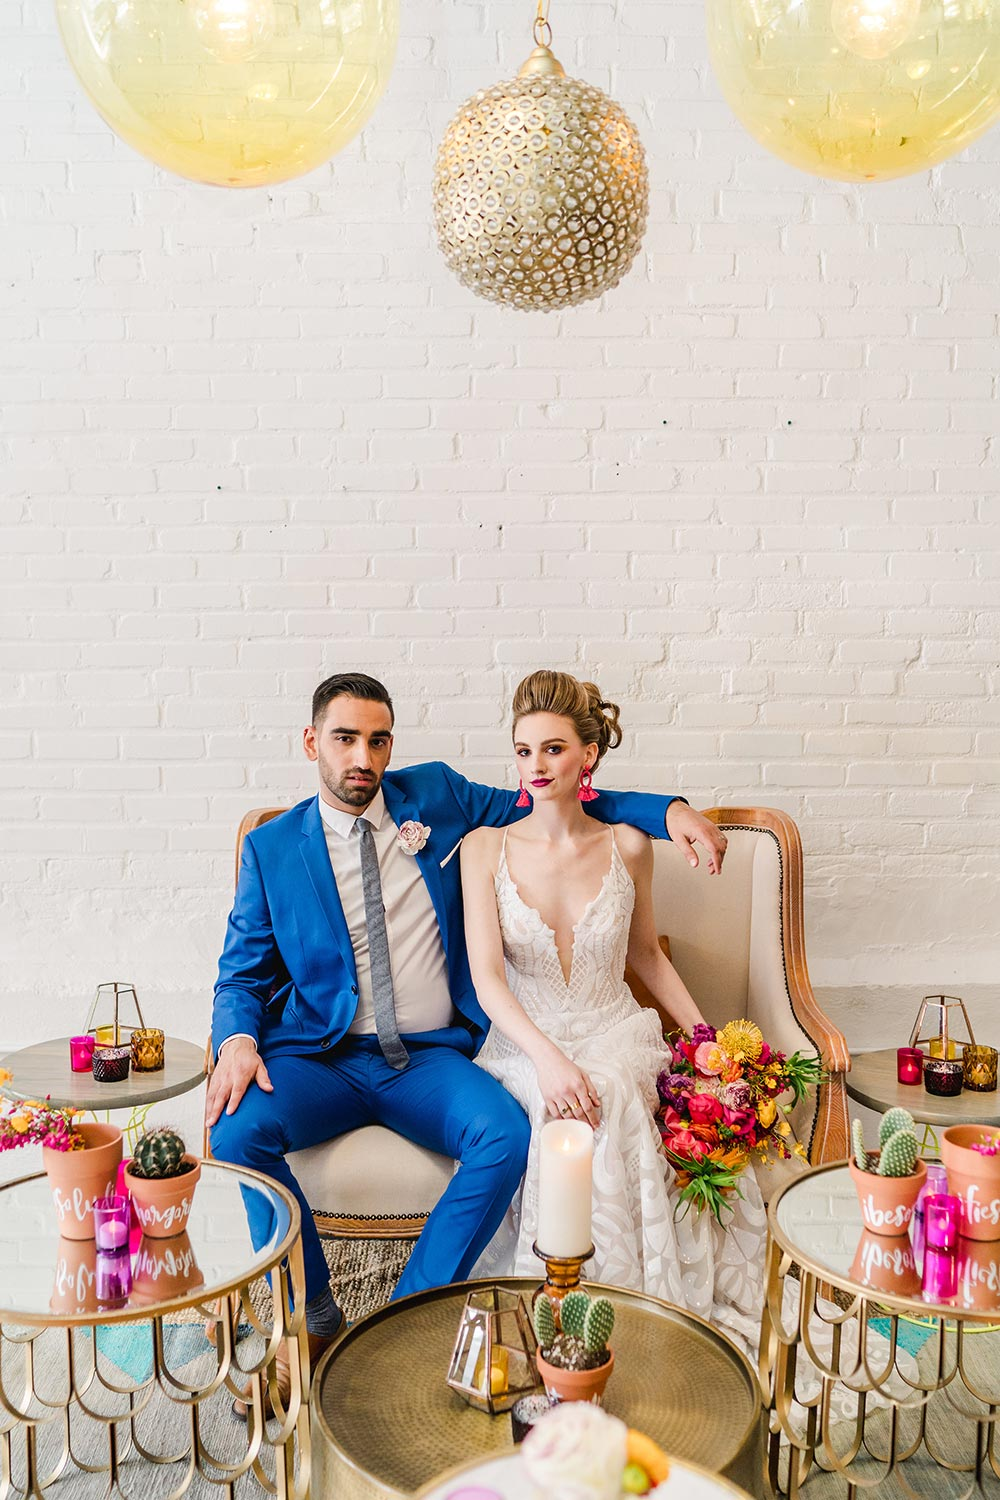 sequined spaghetti strap wedding dress and cobalt blue groom suit